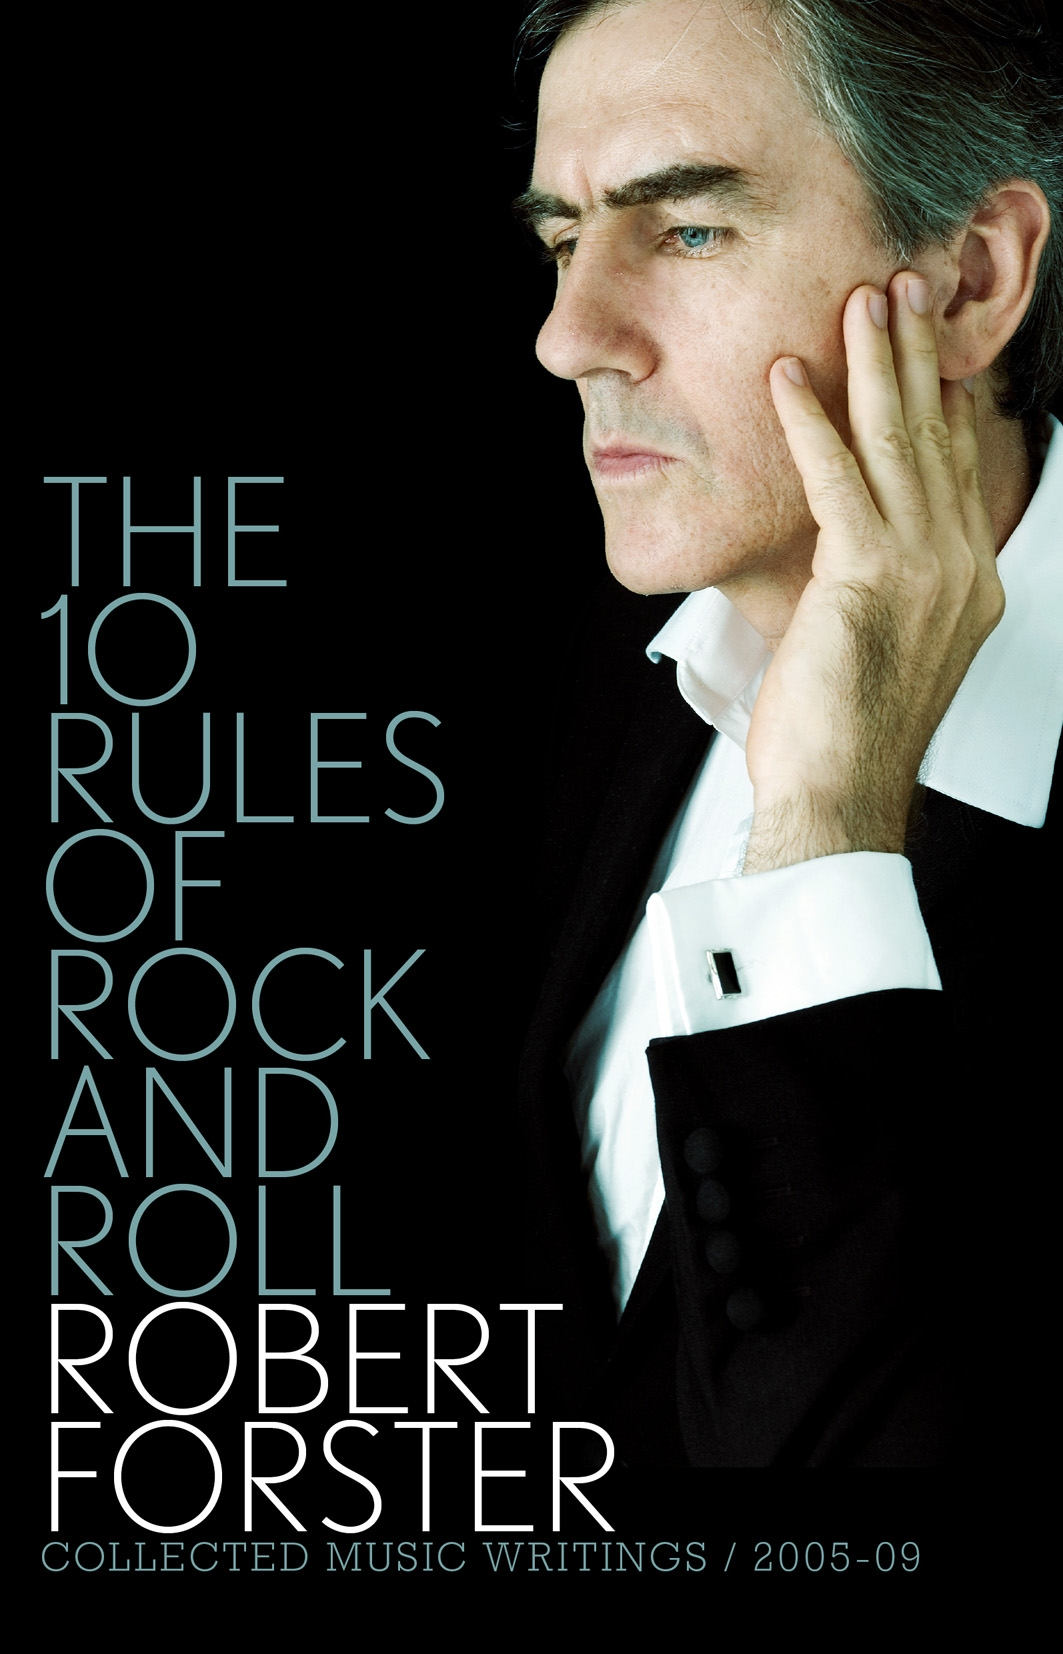 Book Cover: The 10 Rules of Rock and Roll: Collected Music Writings / 2005-09